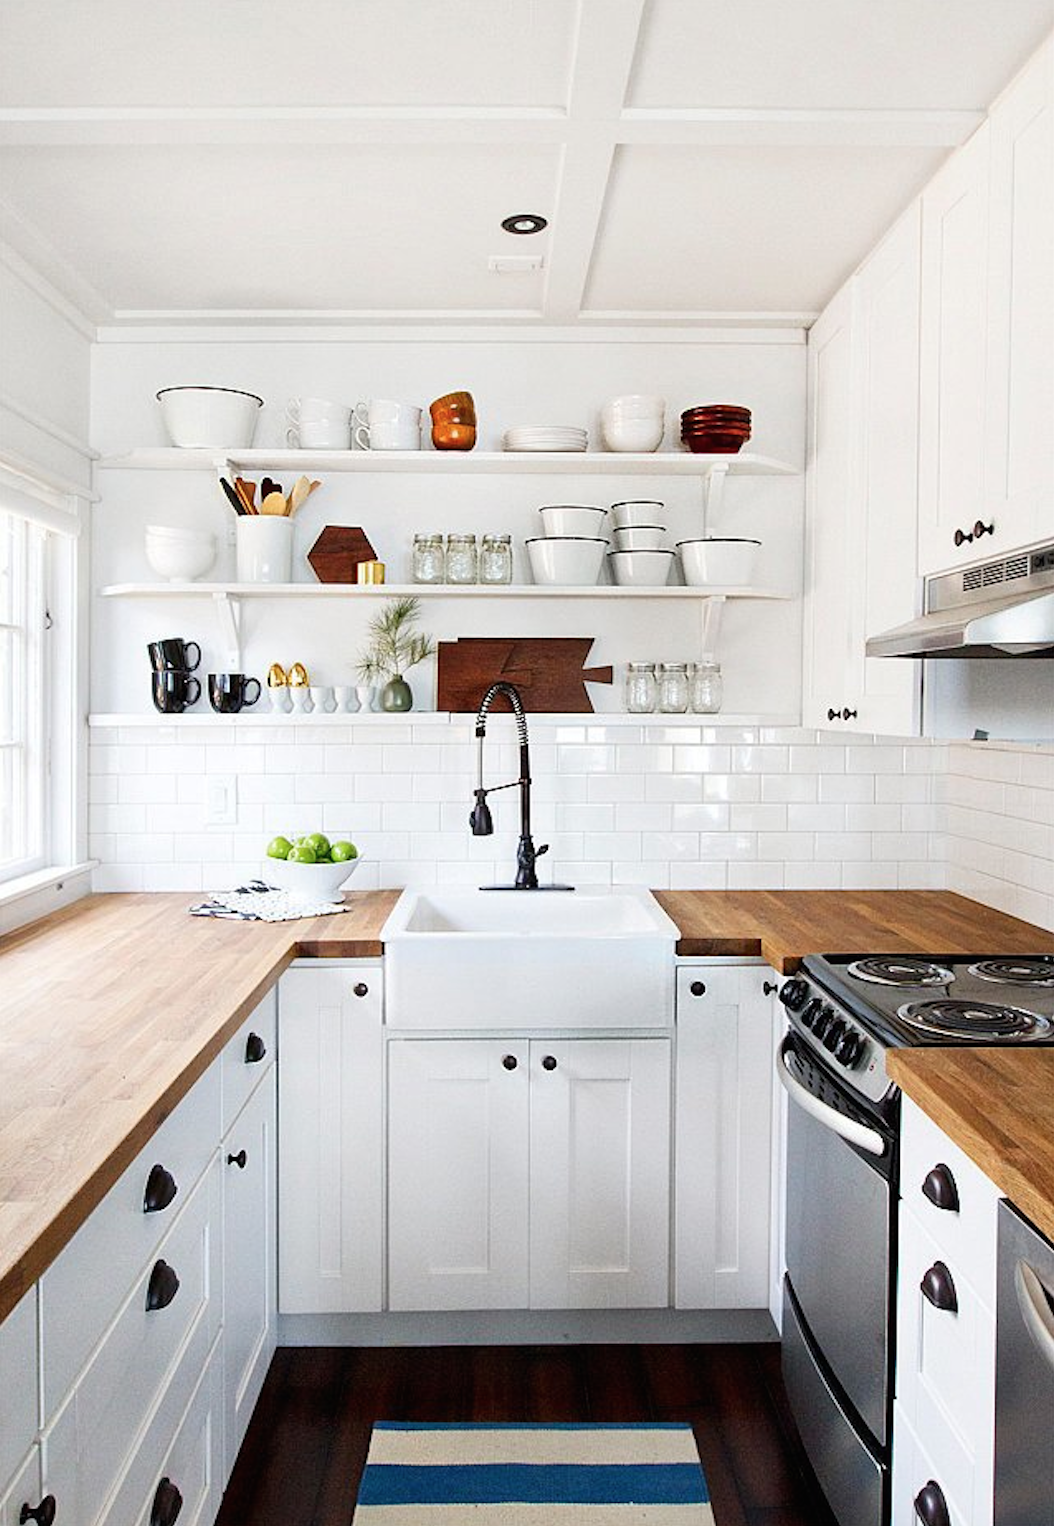 In her cabin kitchen, Sarah Samuel of Smitten Studio installed Ikea's  affordable edge-grain